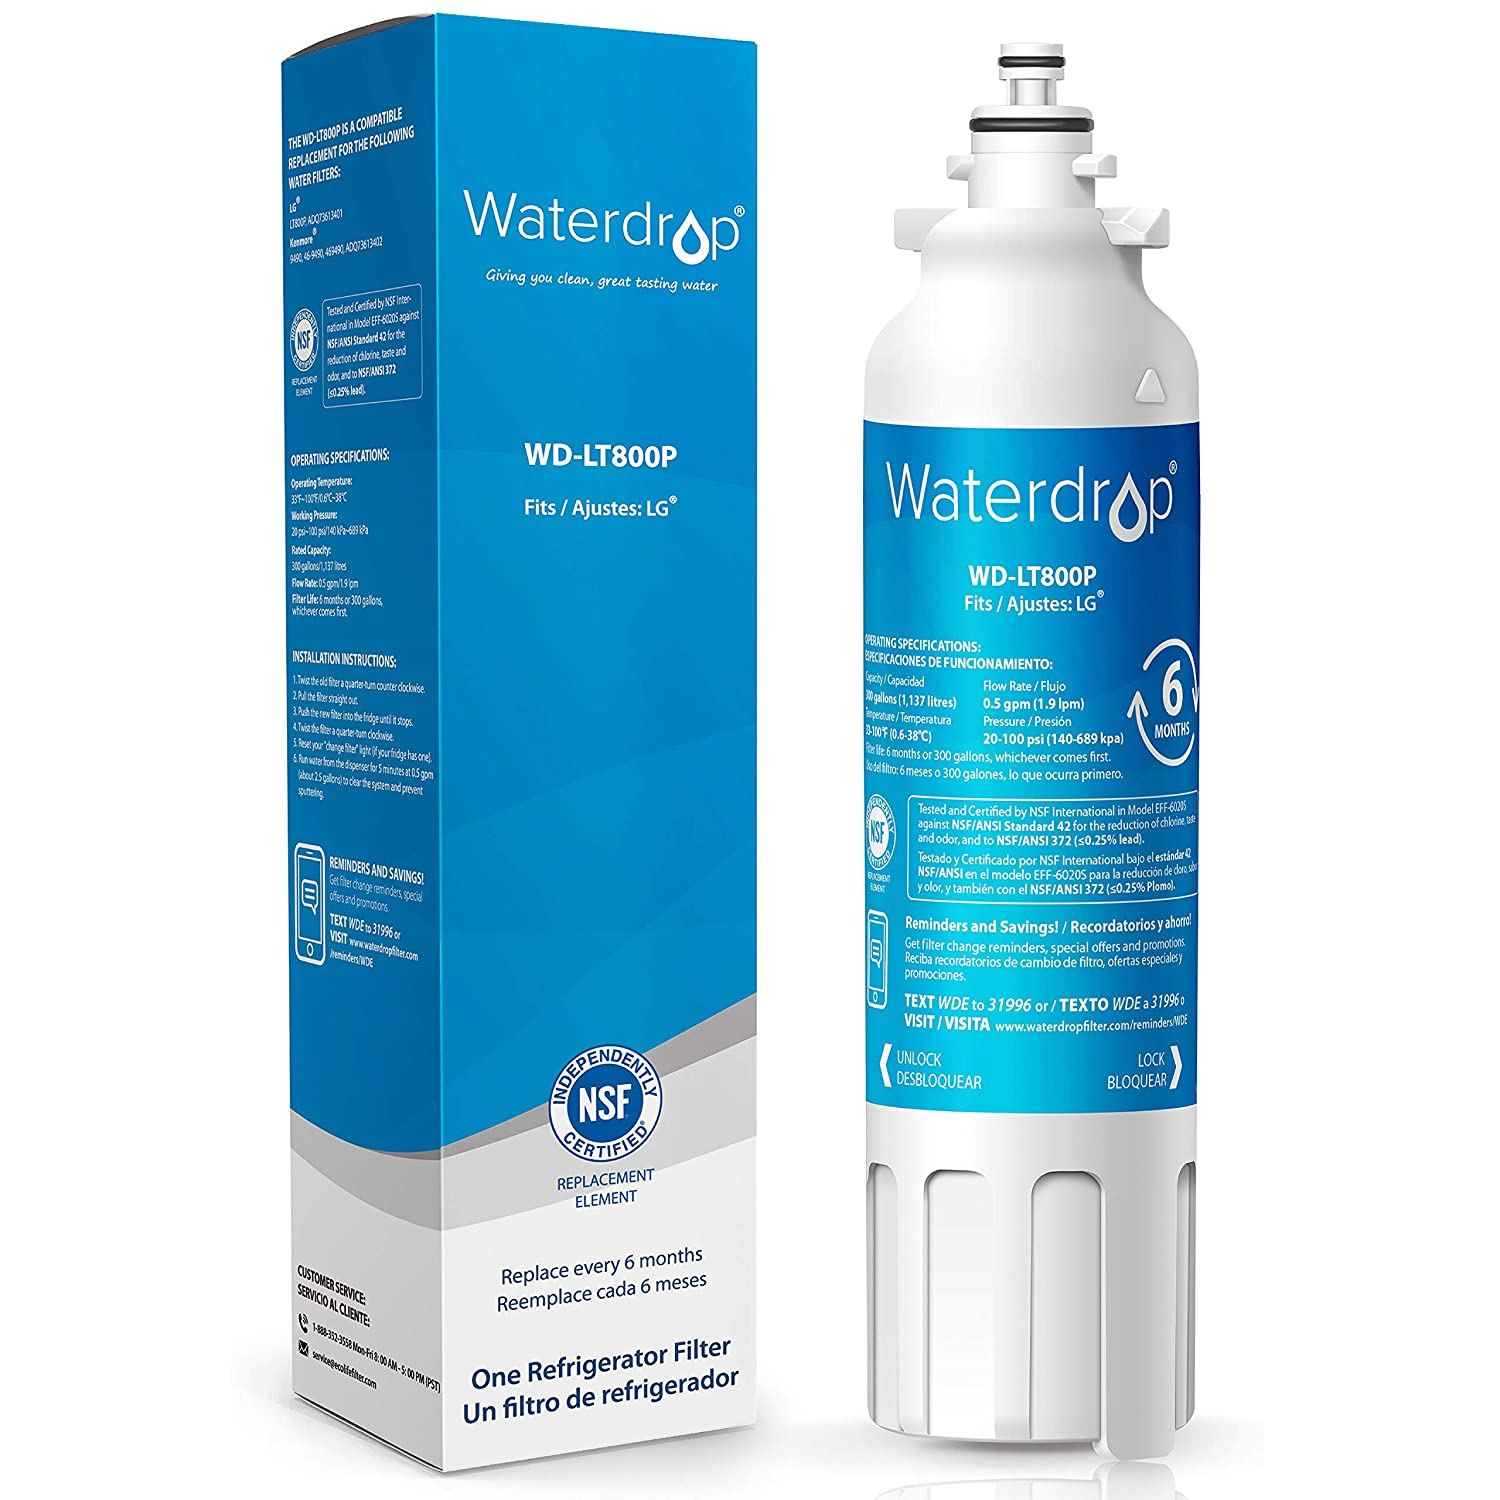 Waterdrop ADQ73613401 Refrigerator Water Filter, Compatible with LG LT800P, Kenmore 9490, LSXS26326S, LMXC23746S, 46-9490, 469490, ADQ73613402, LMXC23746D, LSXS26366S